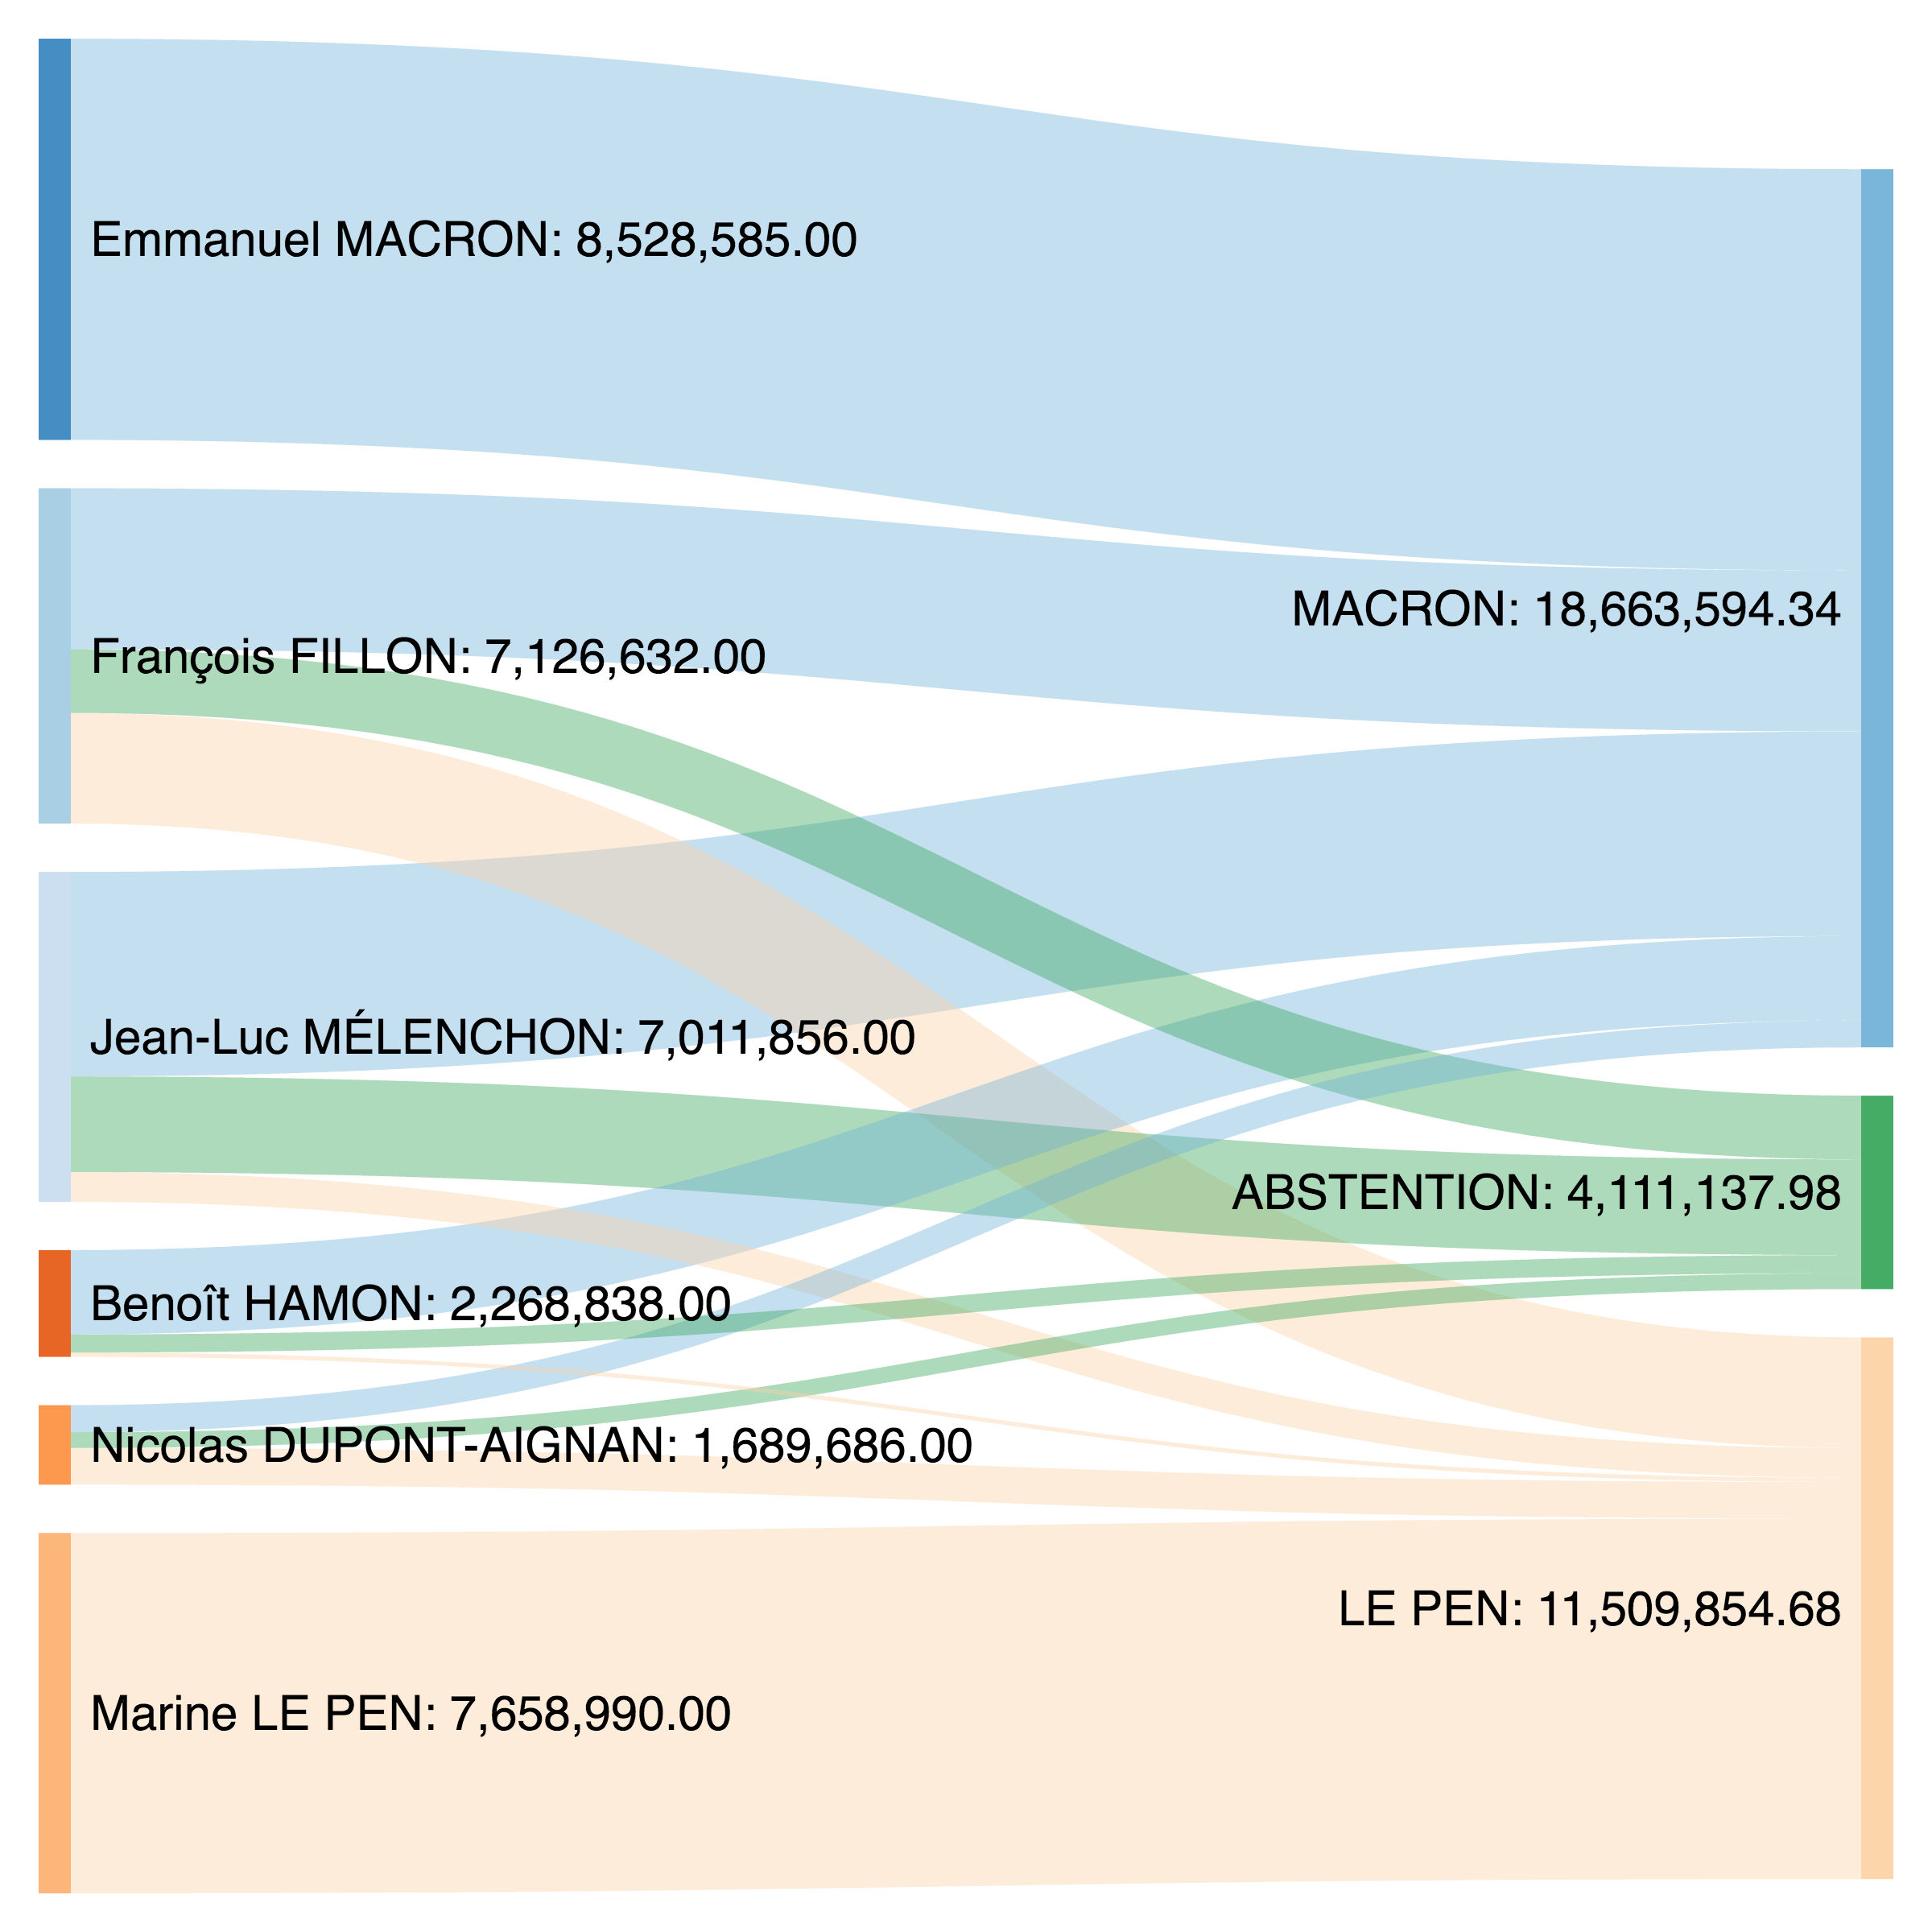 http://blogs.lse.ac.uk/europpblog/files/2017/04/french-elections-transfers.png